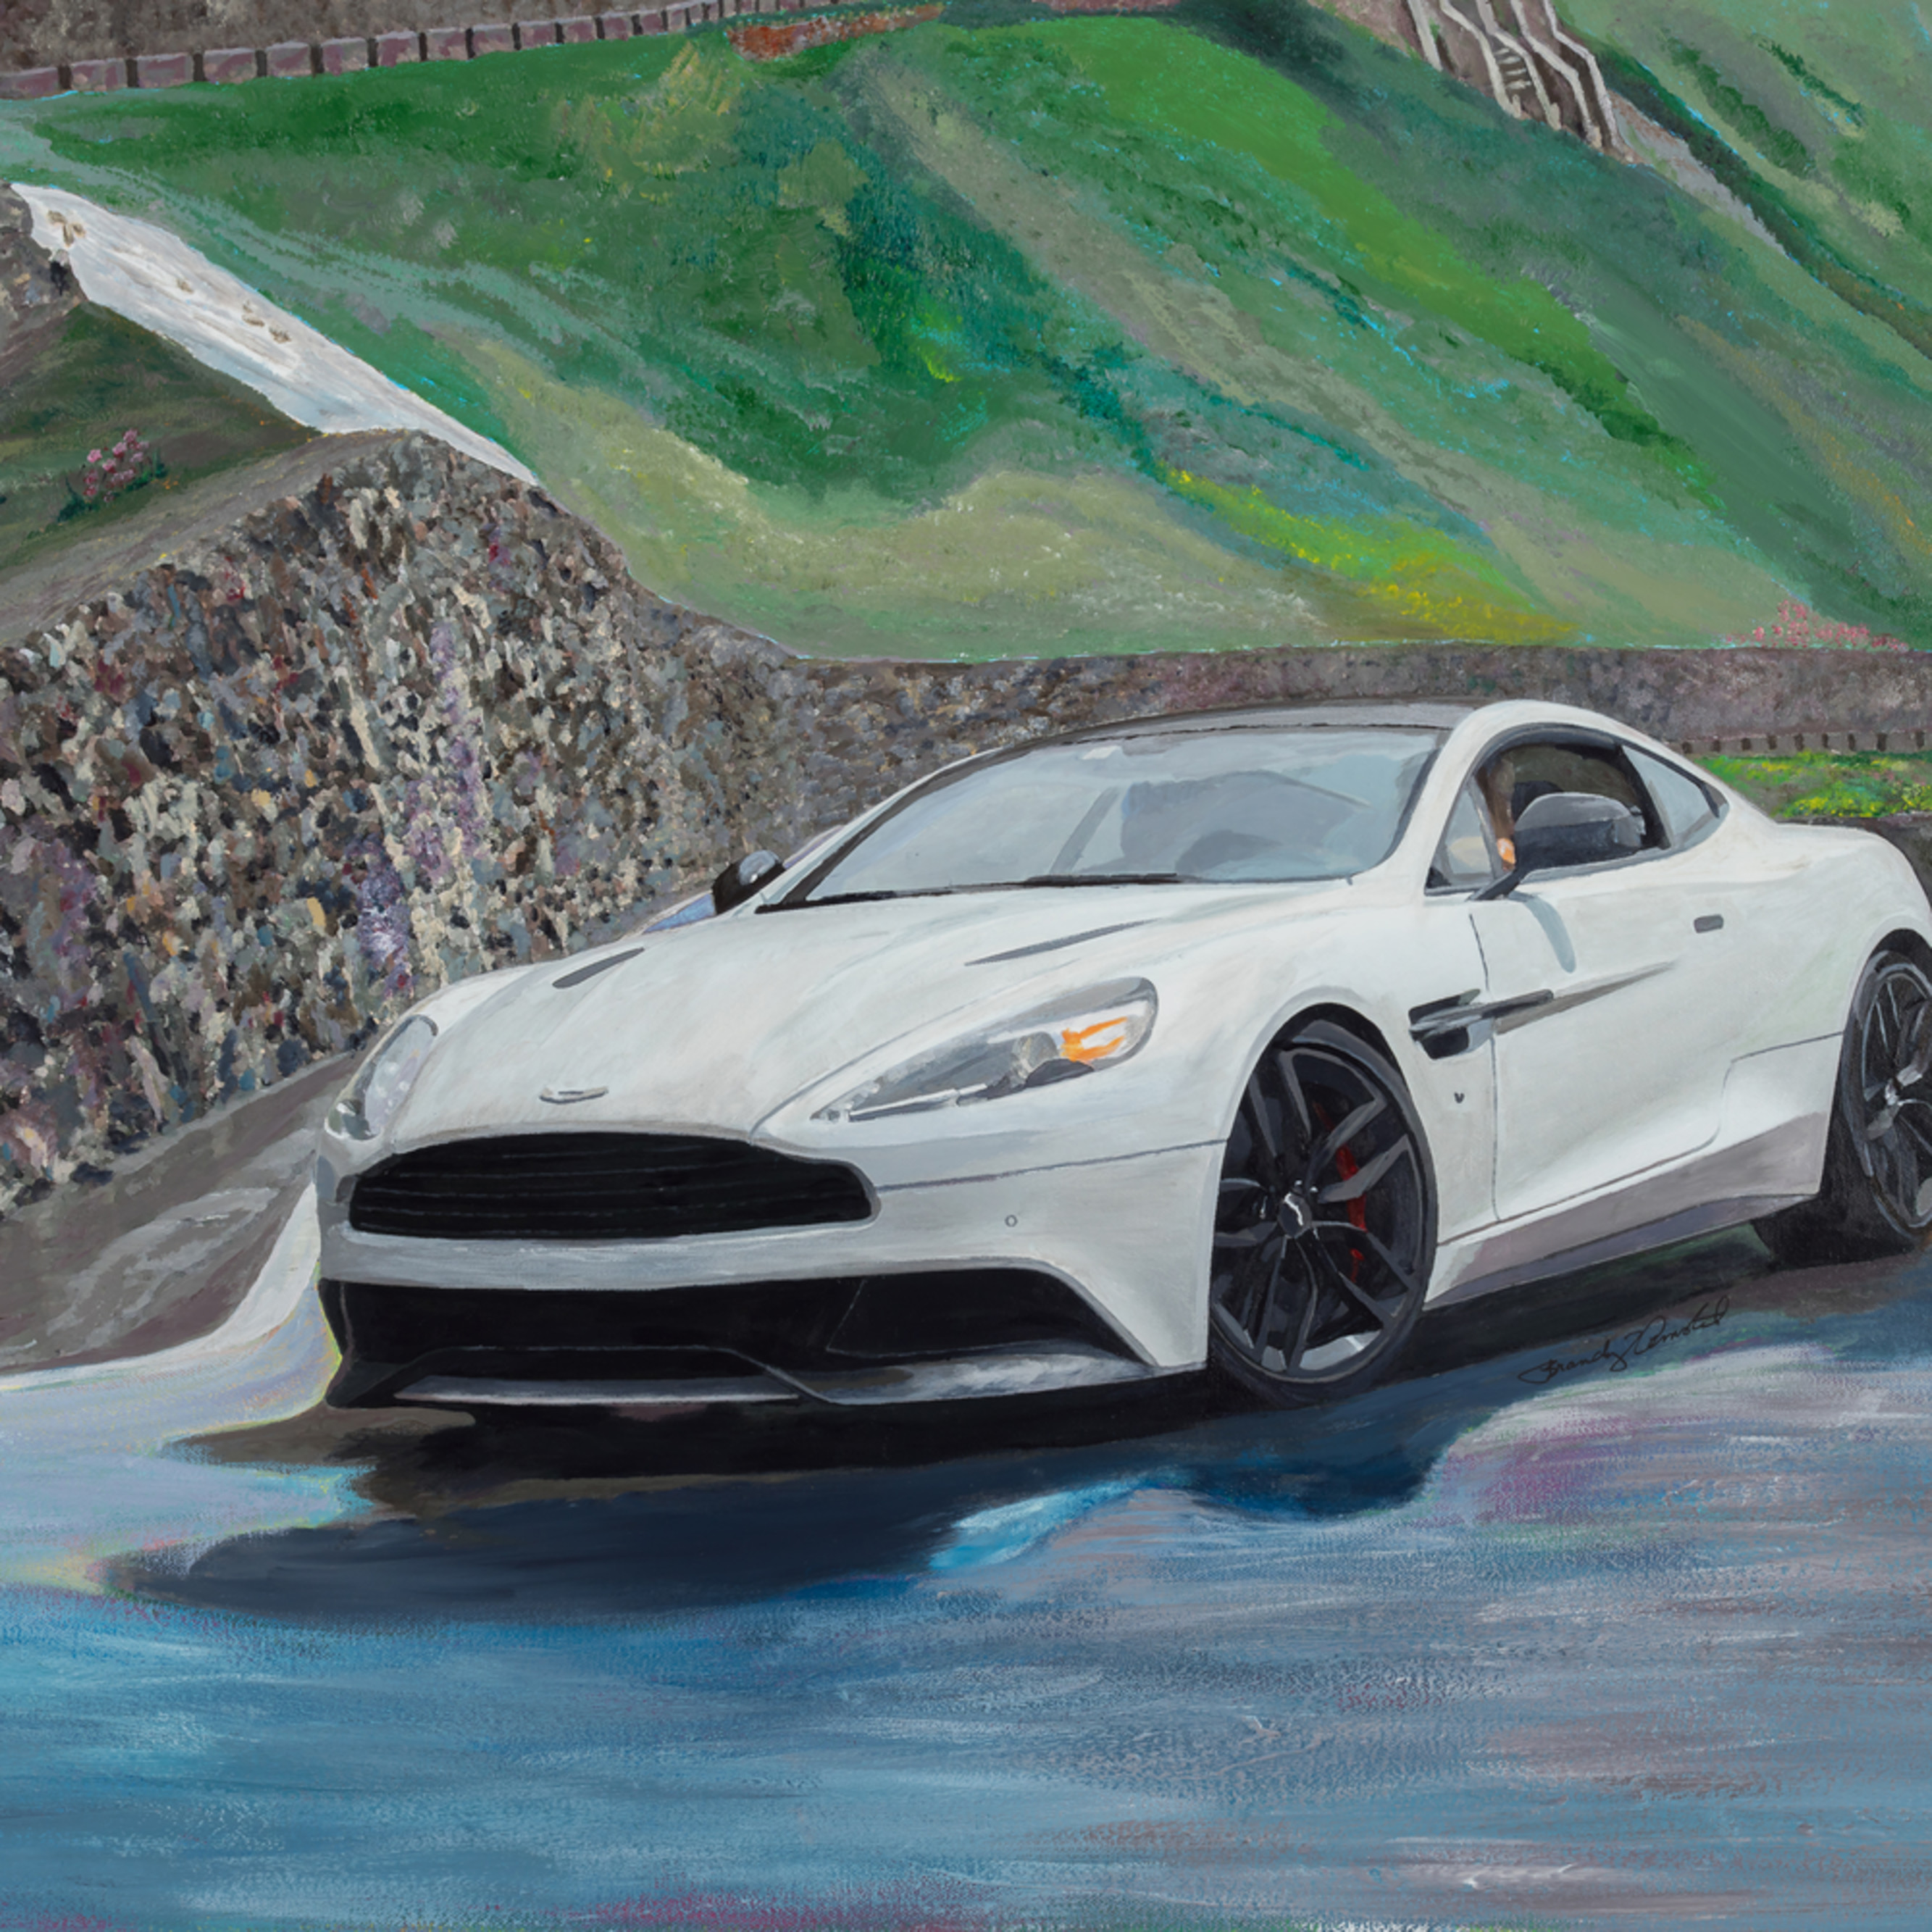 Aston martin vanquish for alastair donald highres dcadyk